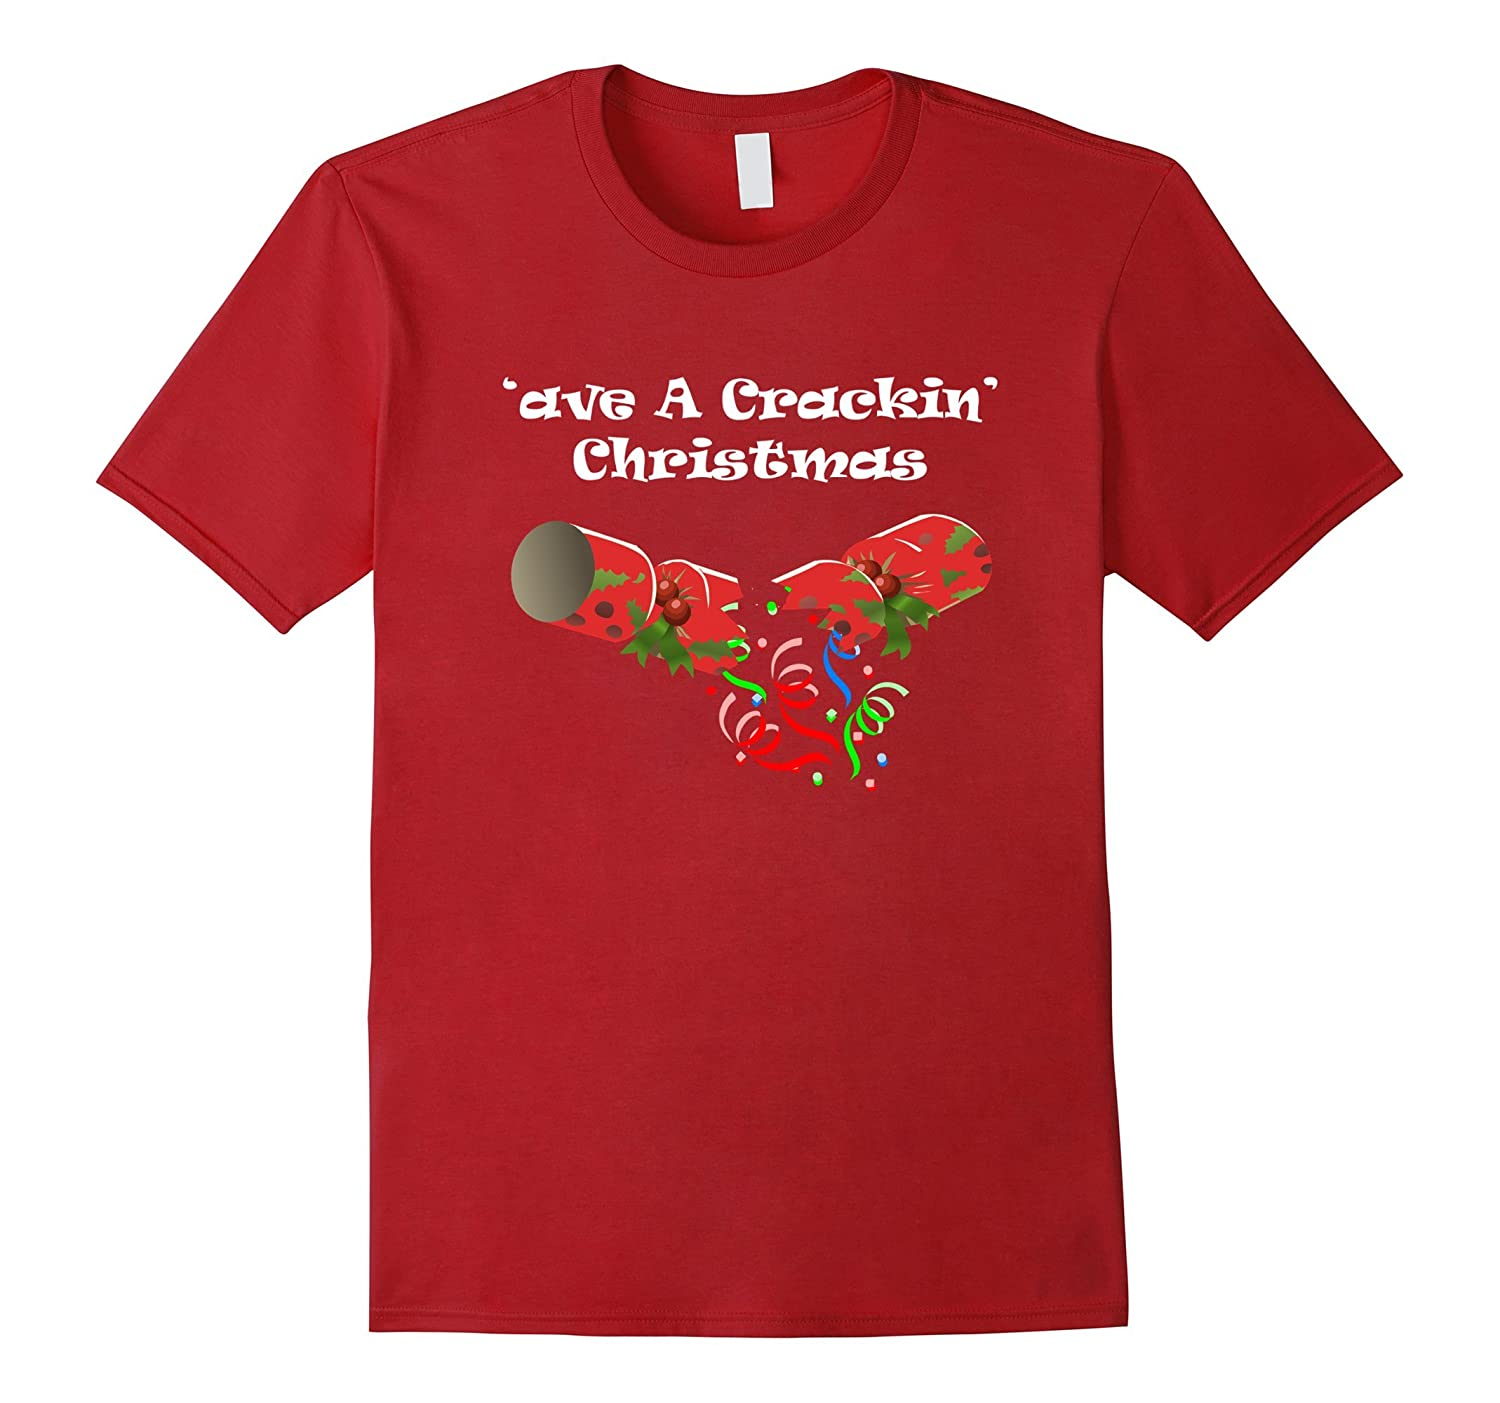 'ave A Crackin' Christmas Fun Holiday British Tee Shirt-Rose